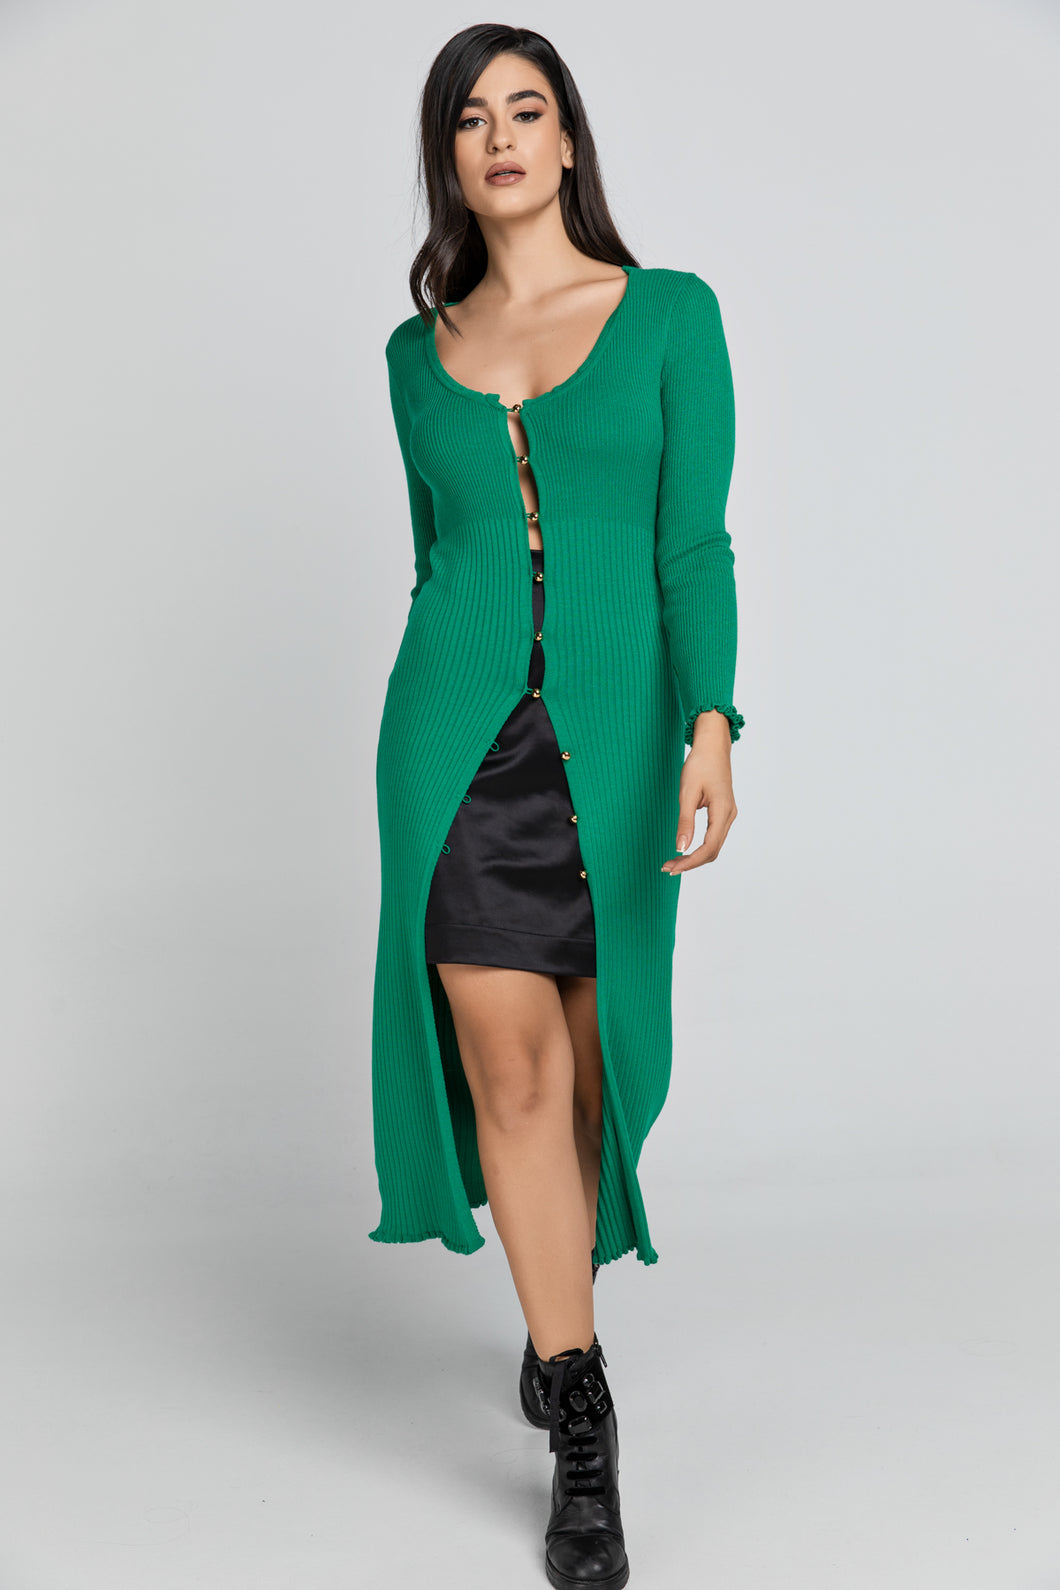 Long Green Knit Cardigan